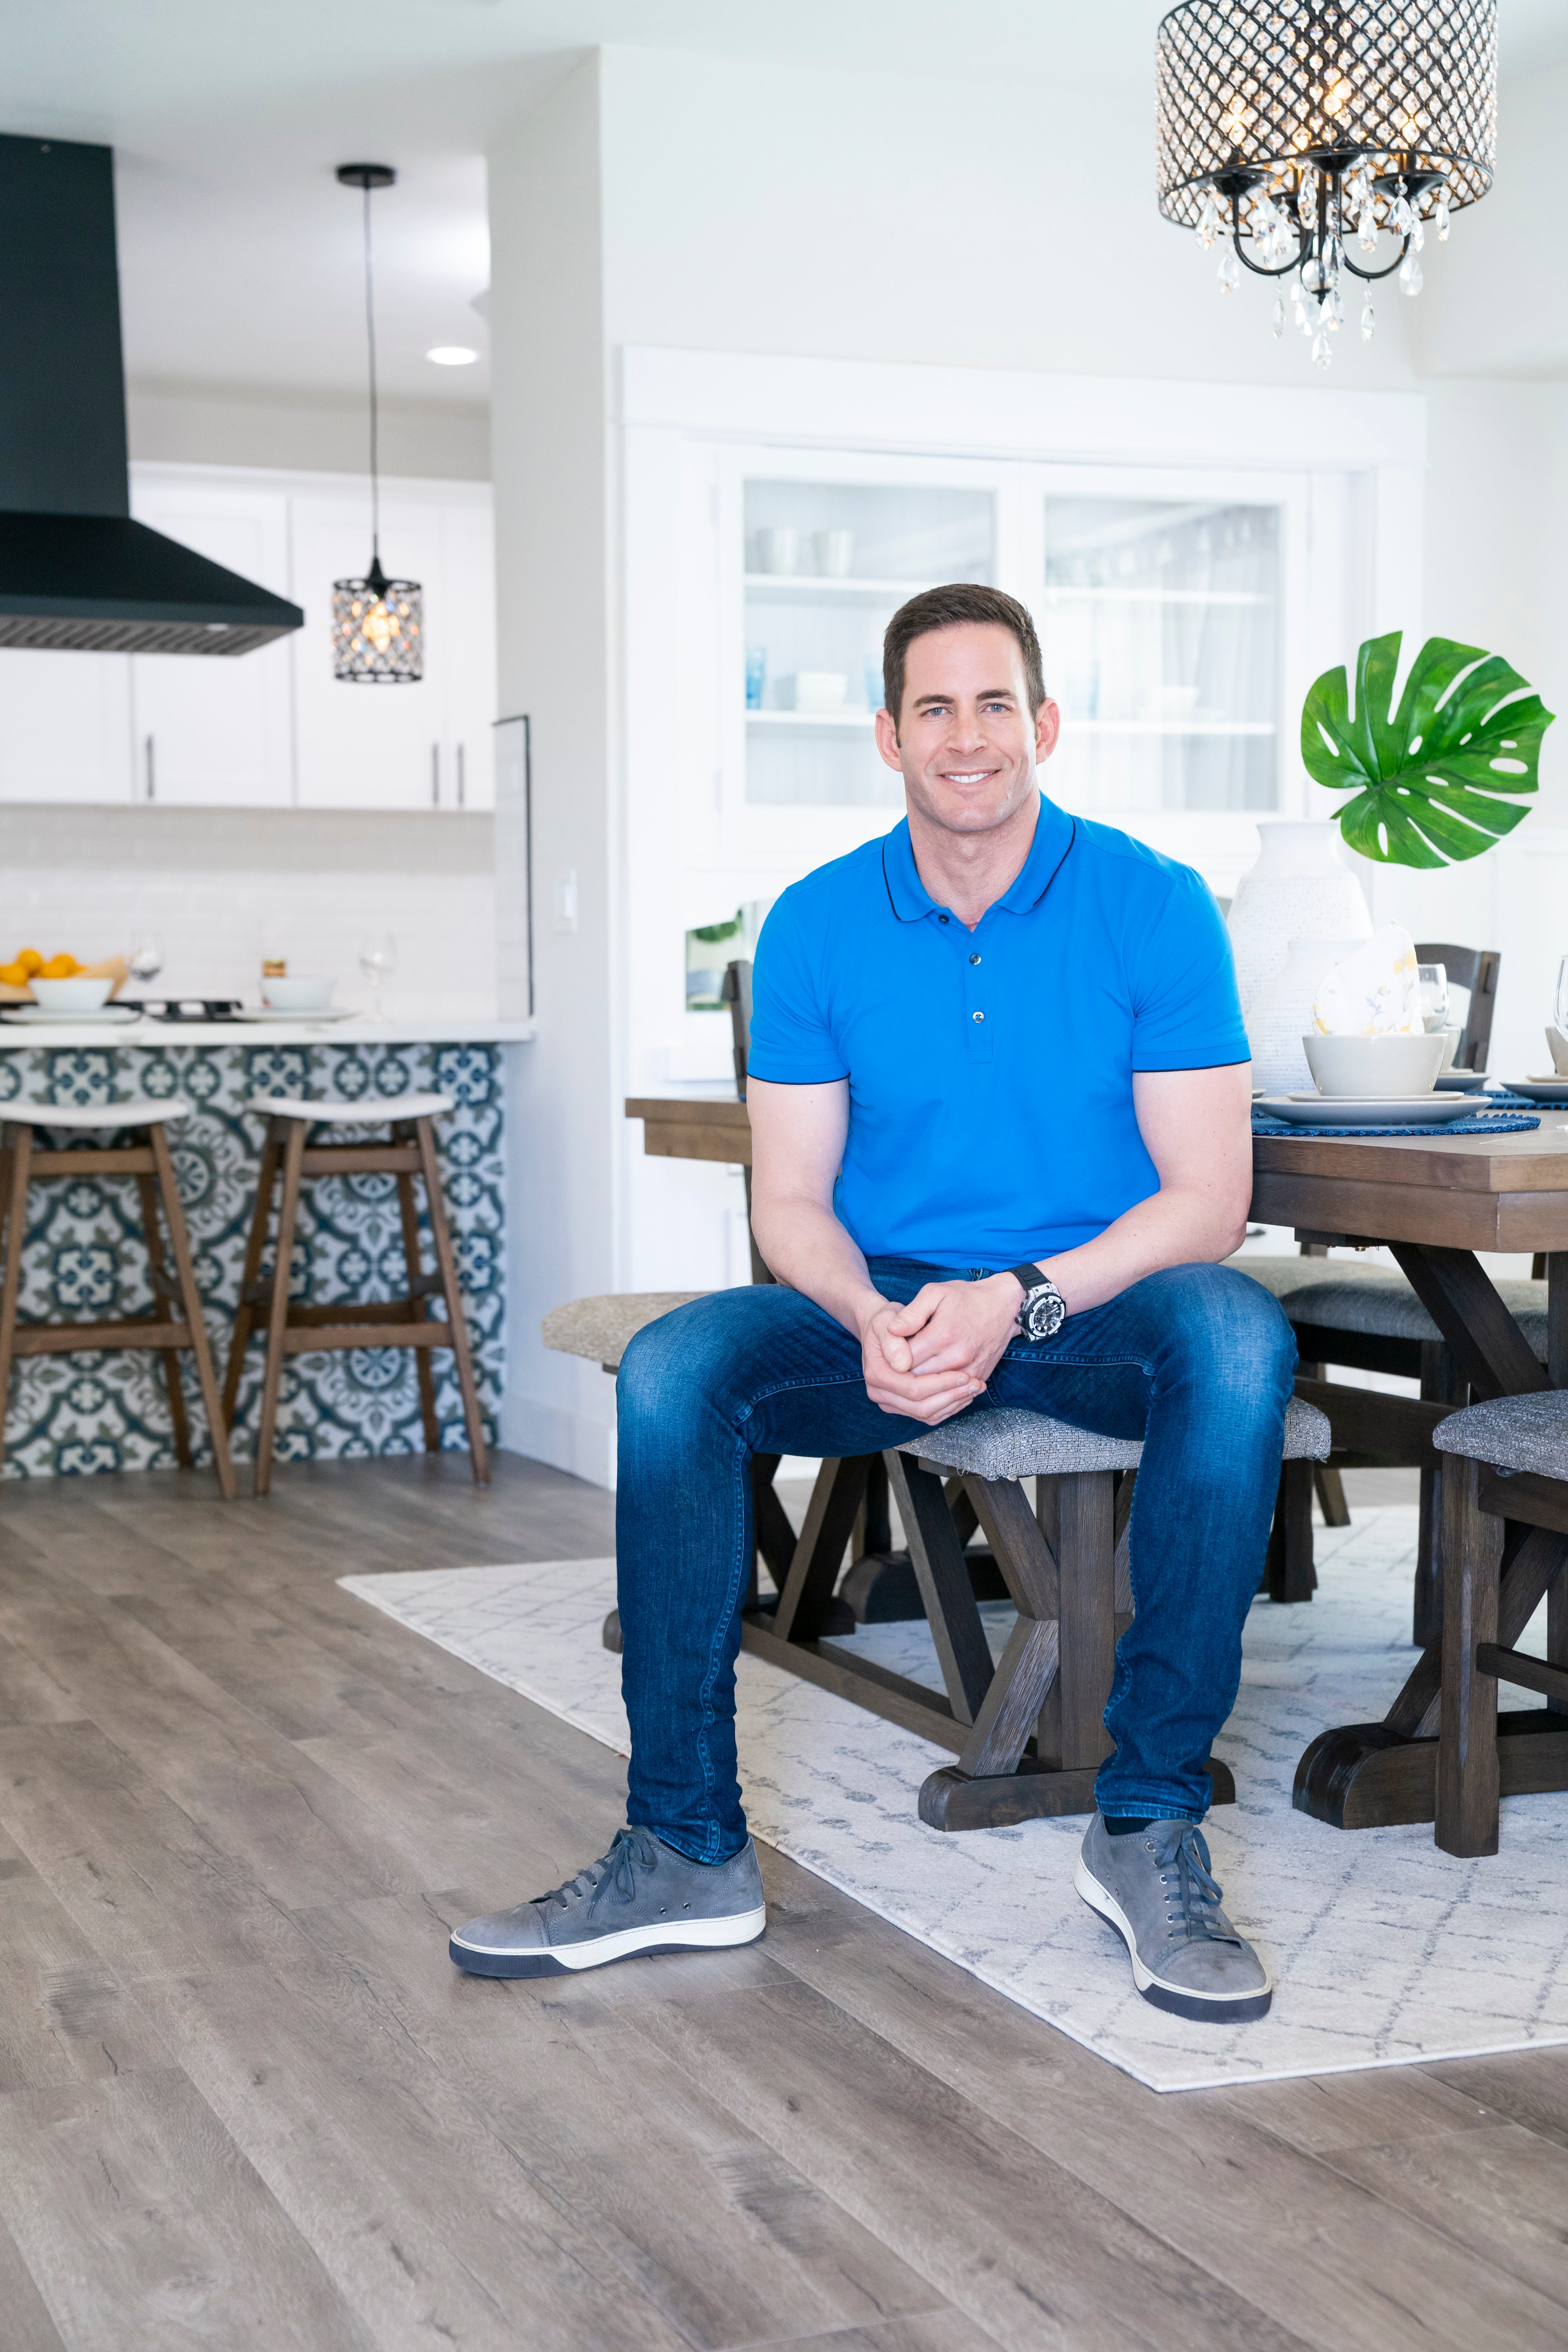 Tarek El Moussa Talks New Hgtv Show Ex Christina Anstead,Curb Appeal Ranch Home Exterior Remodel Before And After